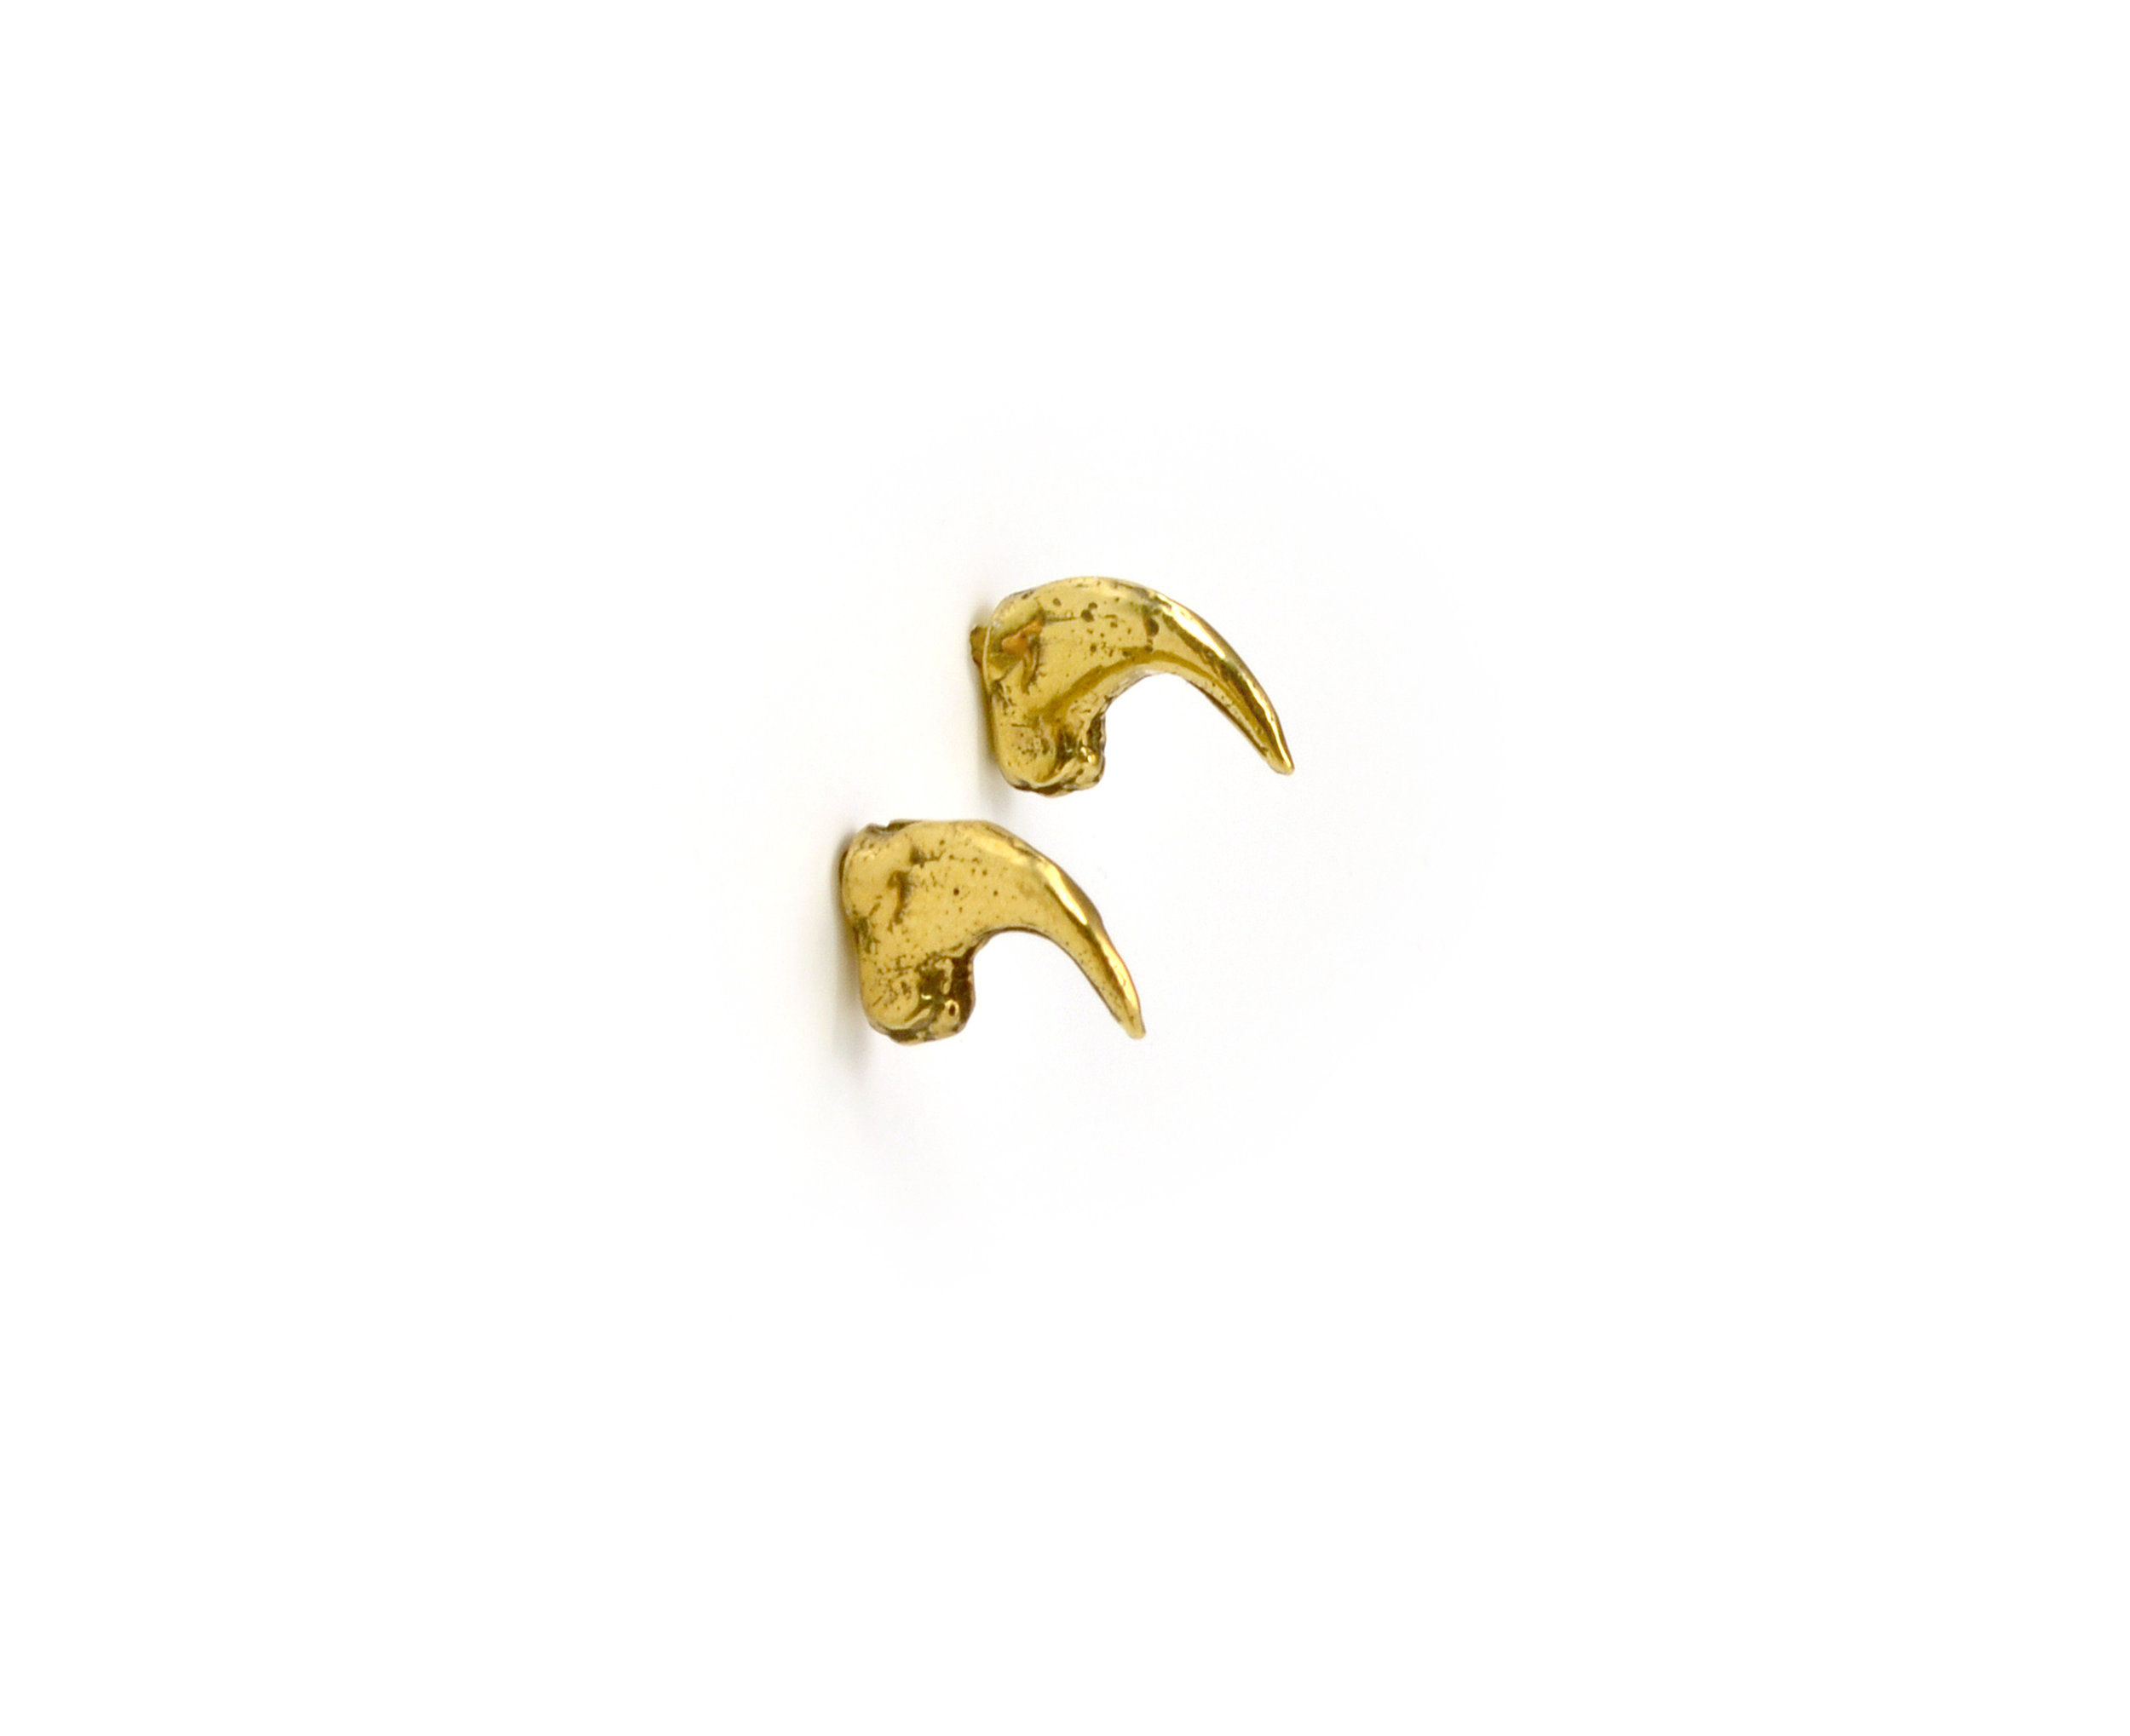 I love wearing these as extra studs to my larger more statement making earrings.